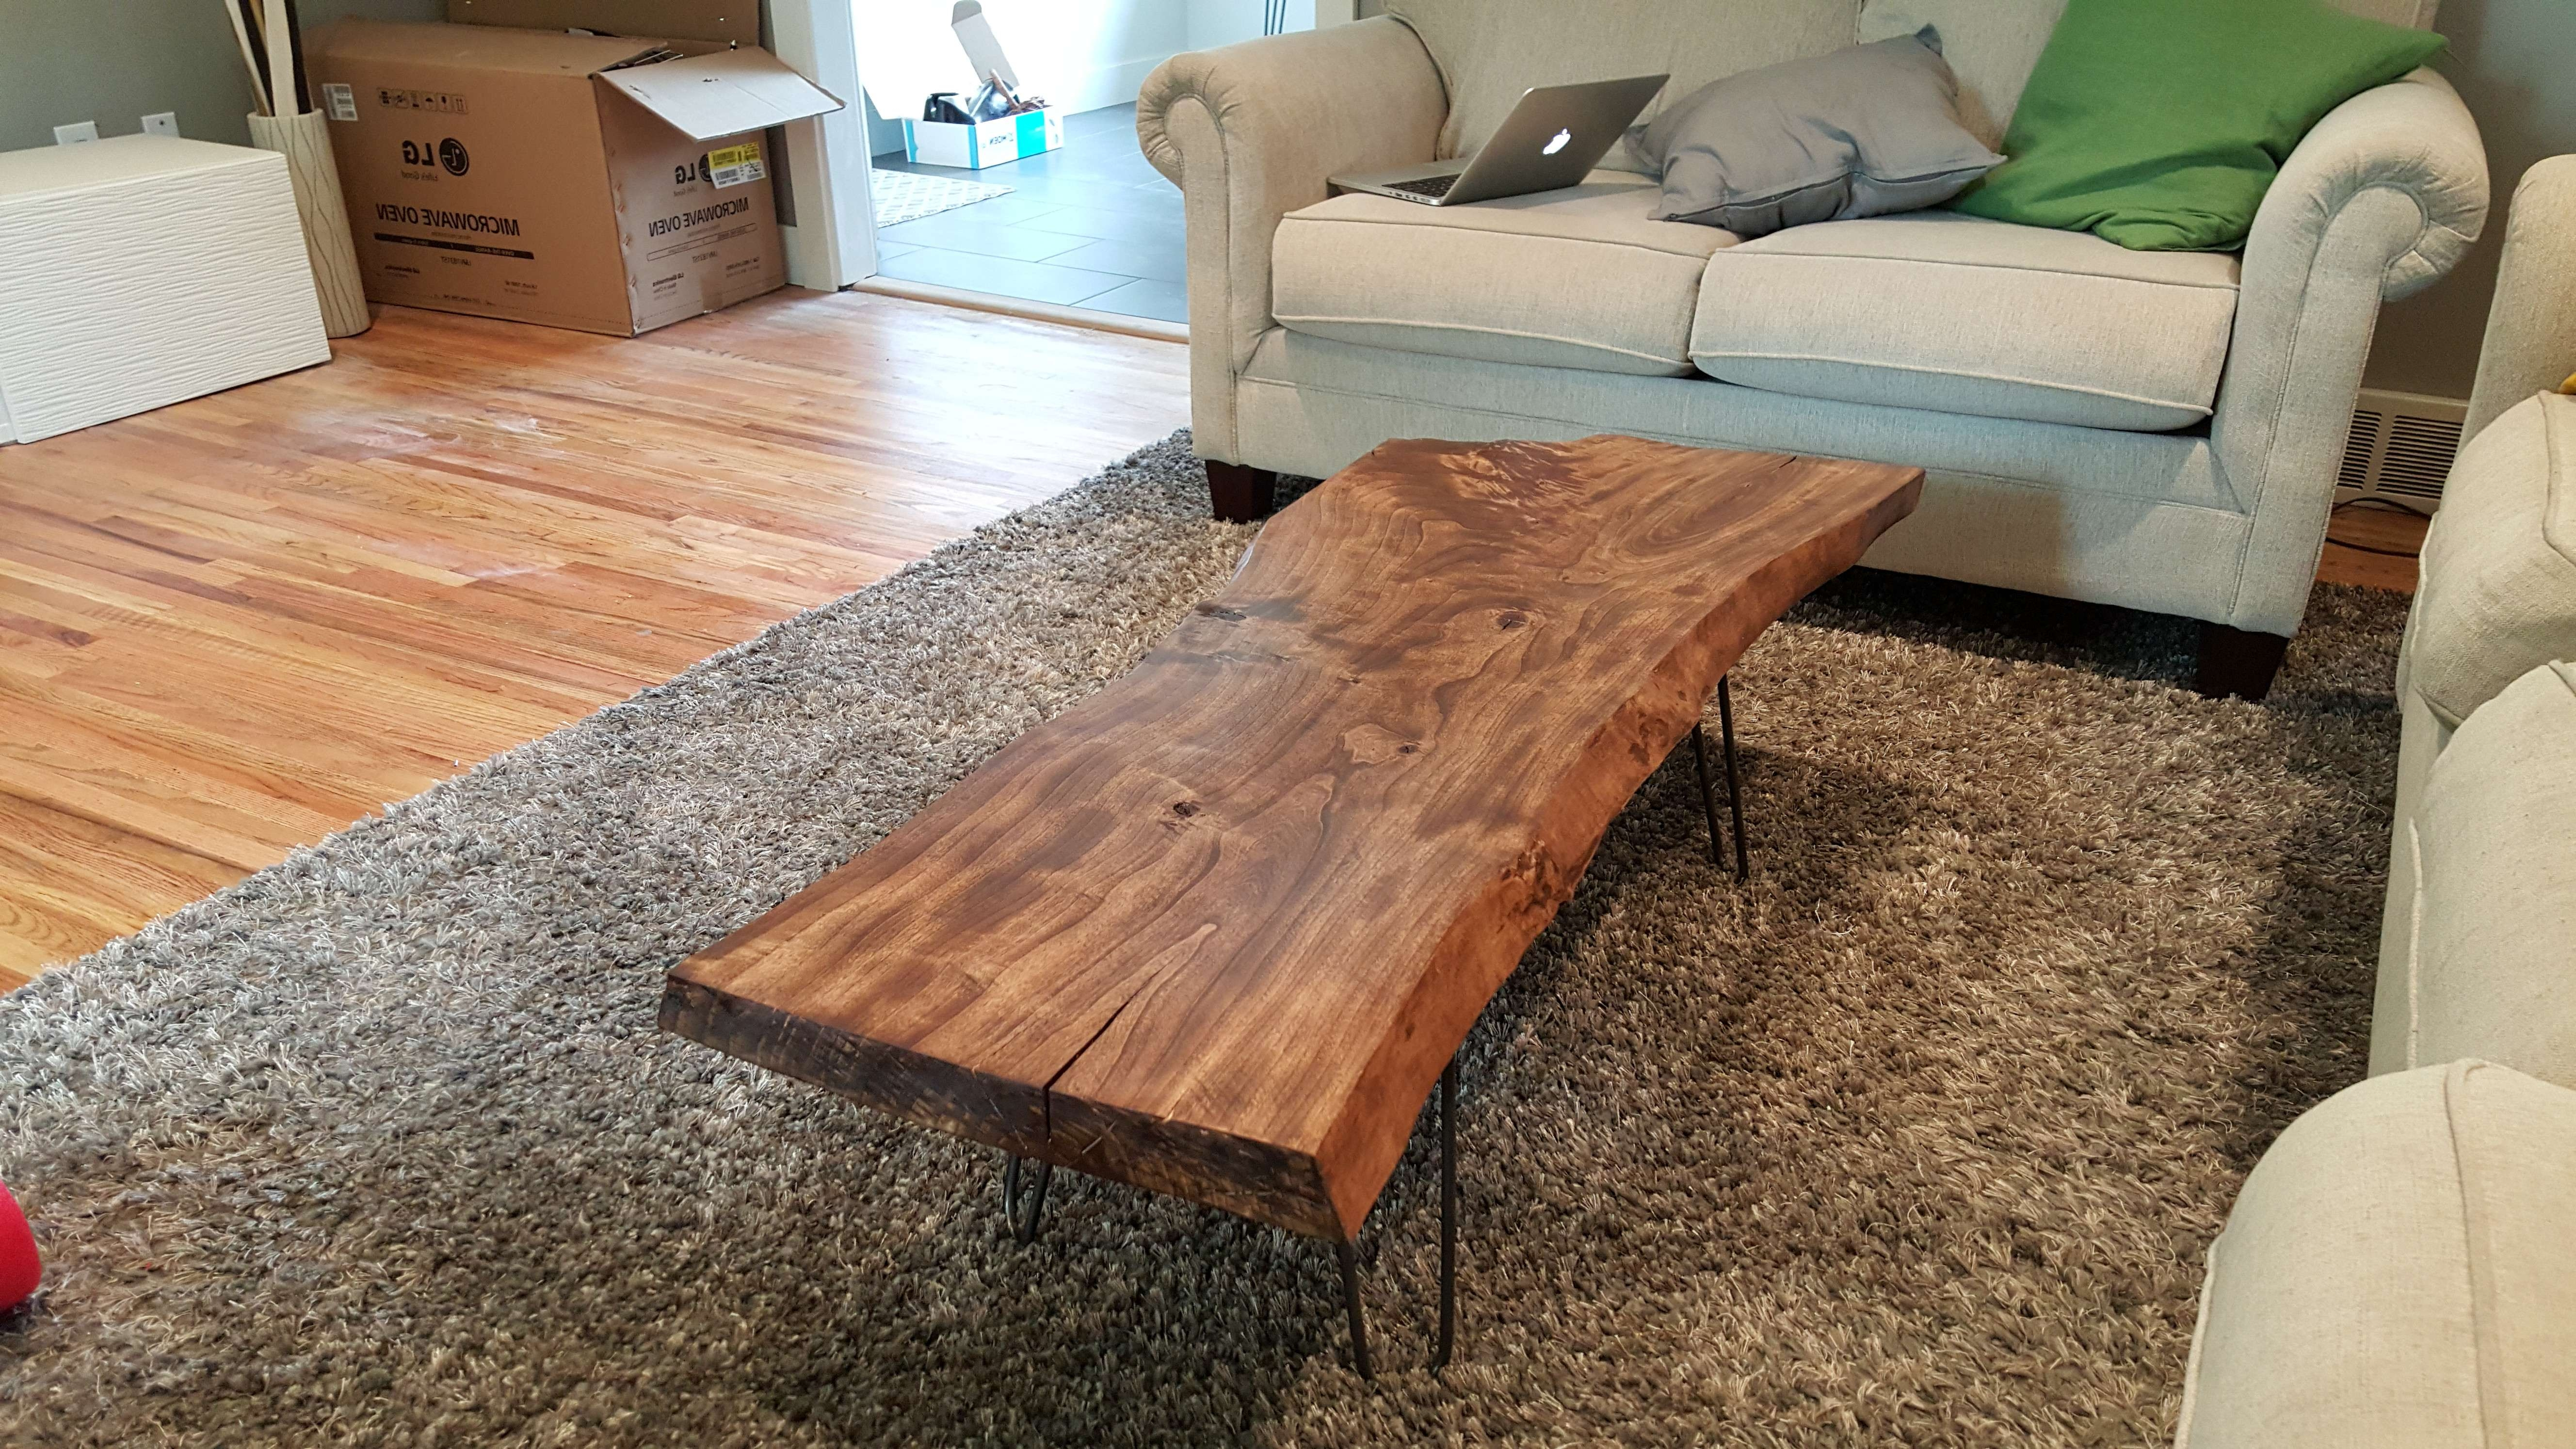 Well Known Live Edge Coffee Tables Inside Diy Live Edge Wood Coffee Table – Album On Imgur (View 19 of 20)